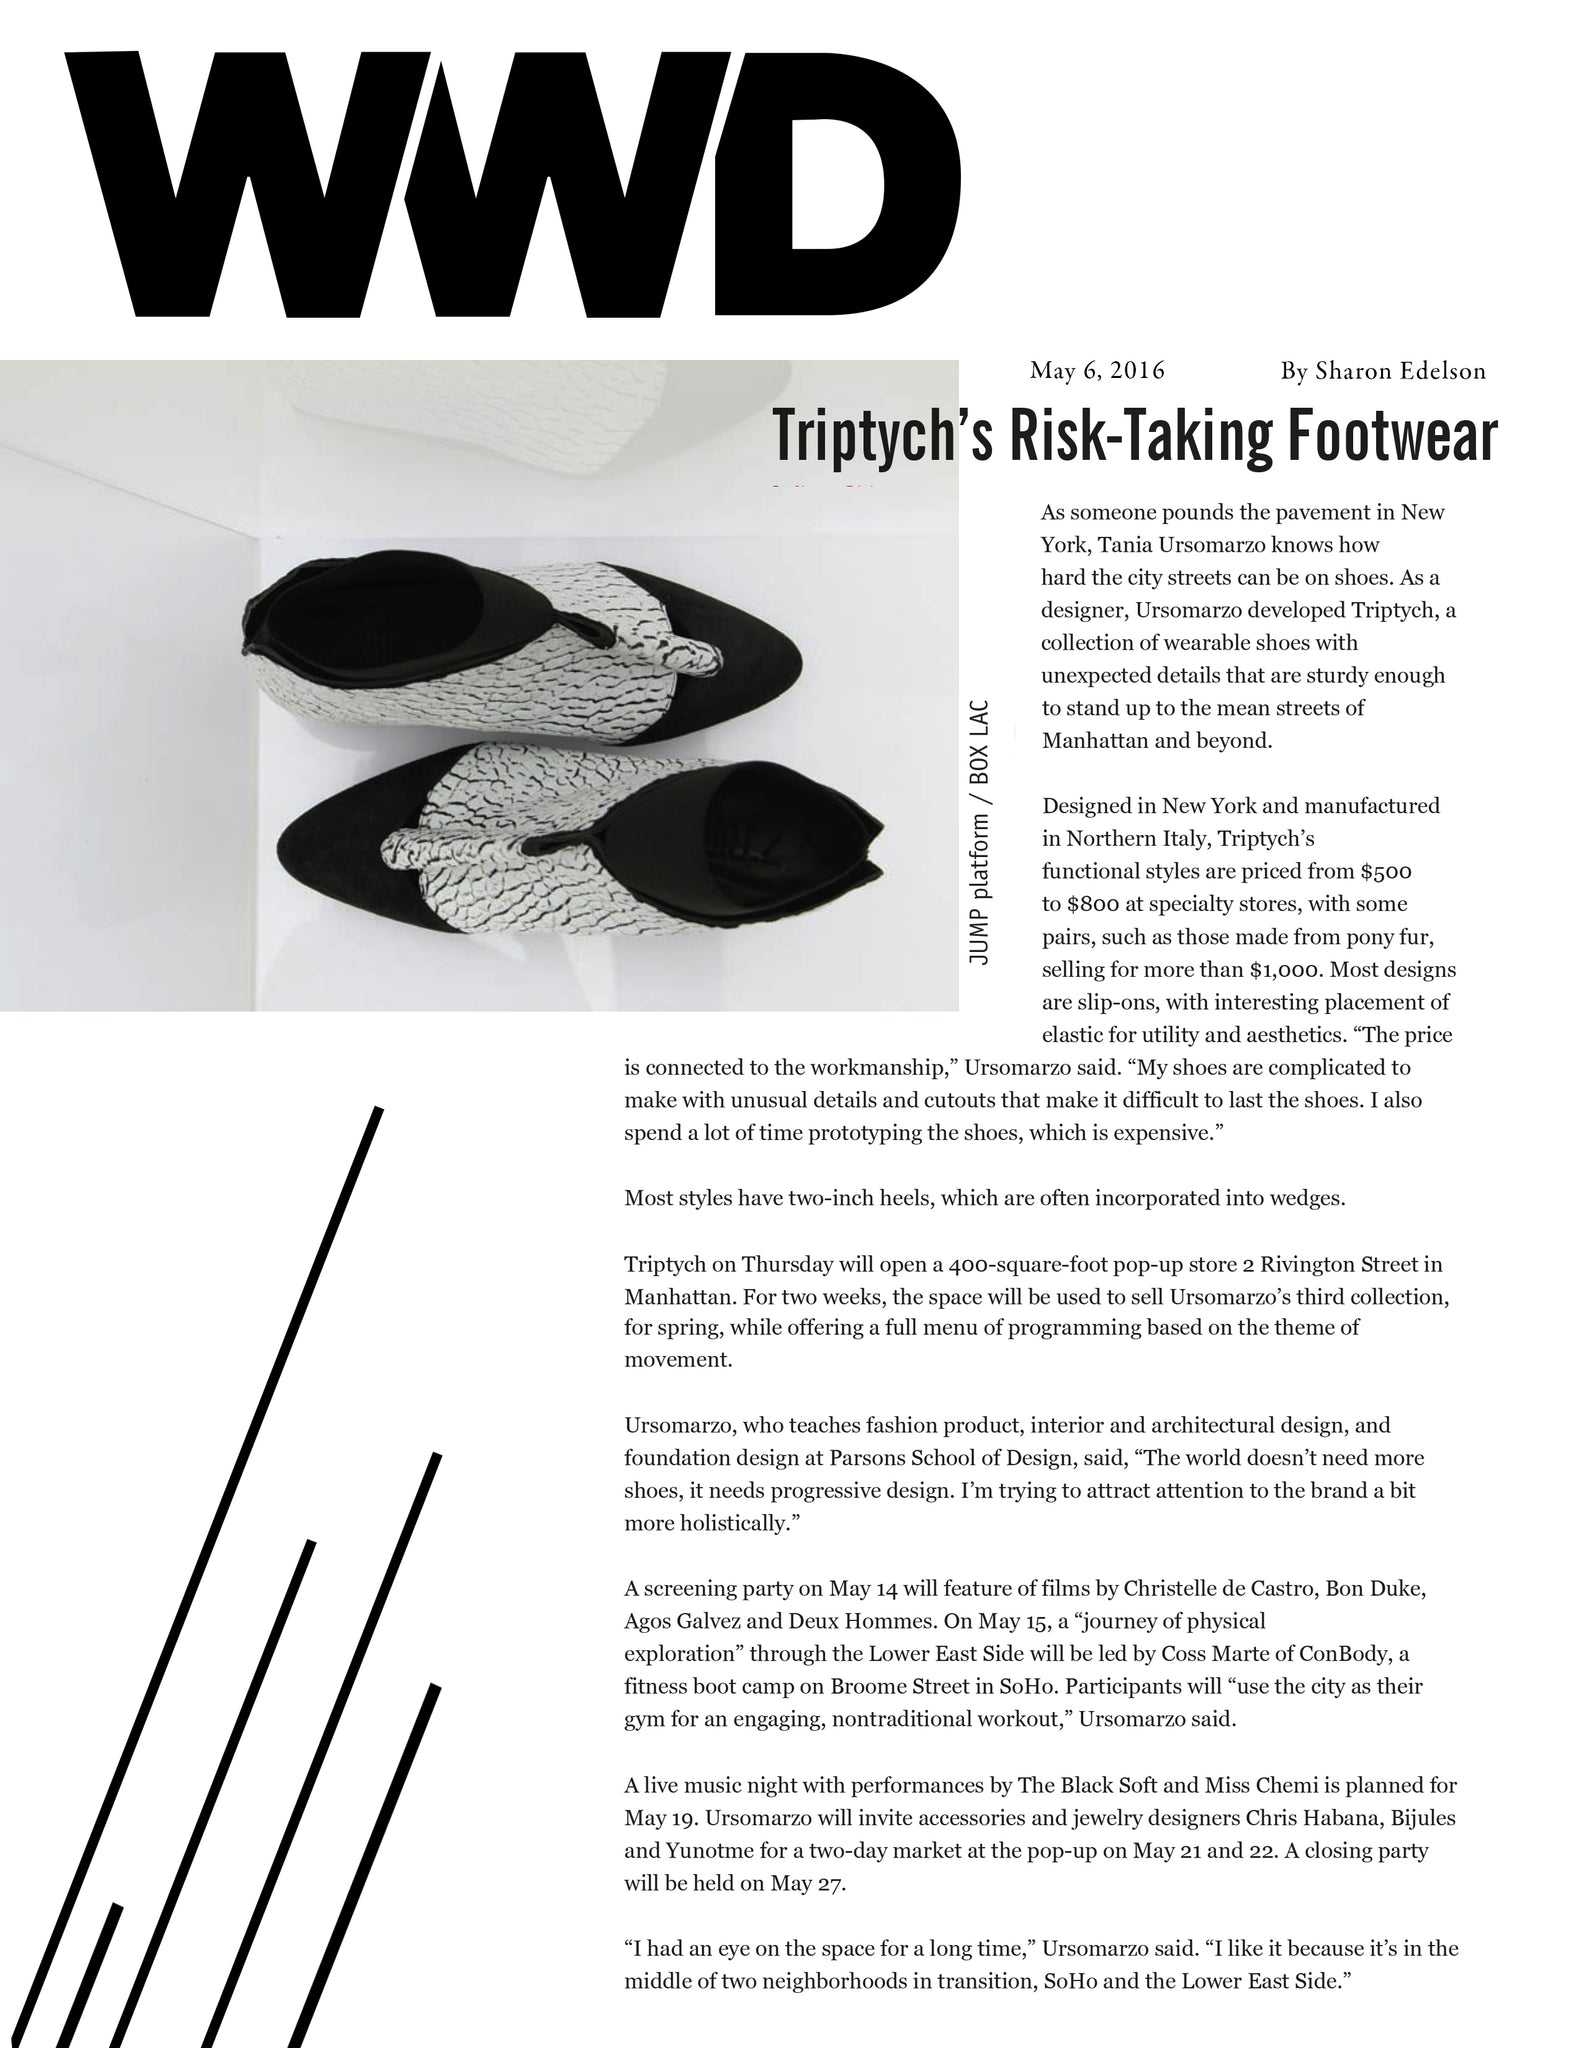 TRIPTYCH FOOTWEAR FEATURED IN WWD